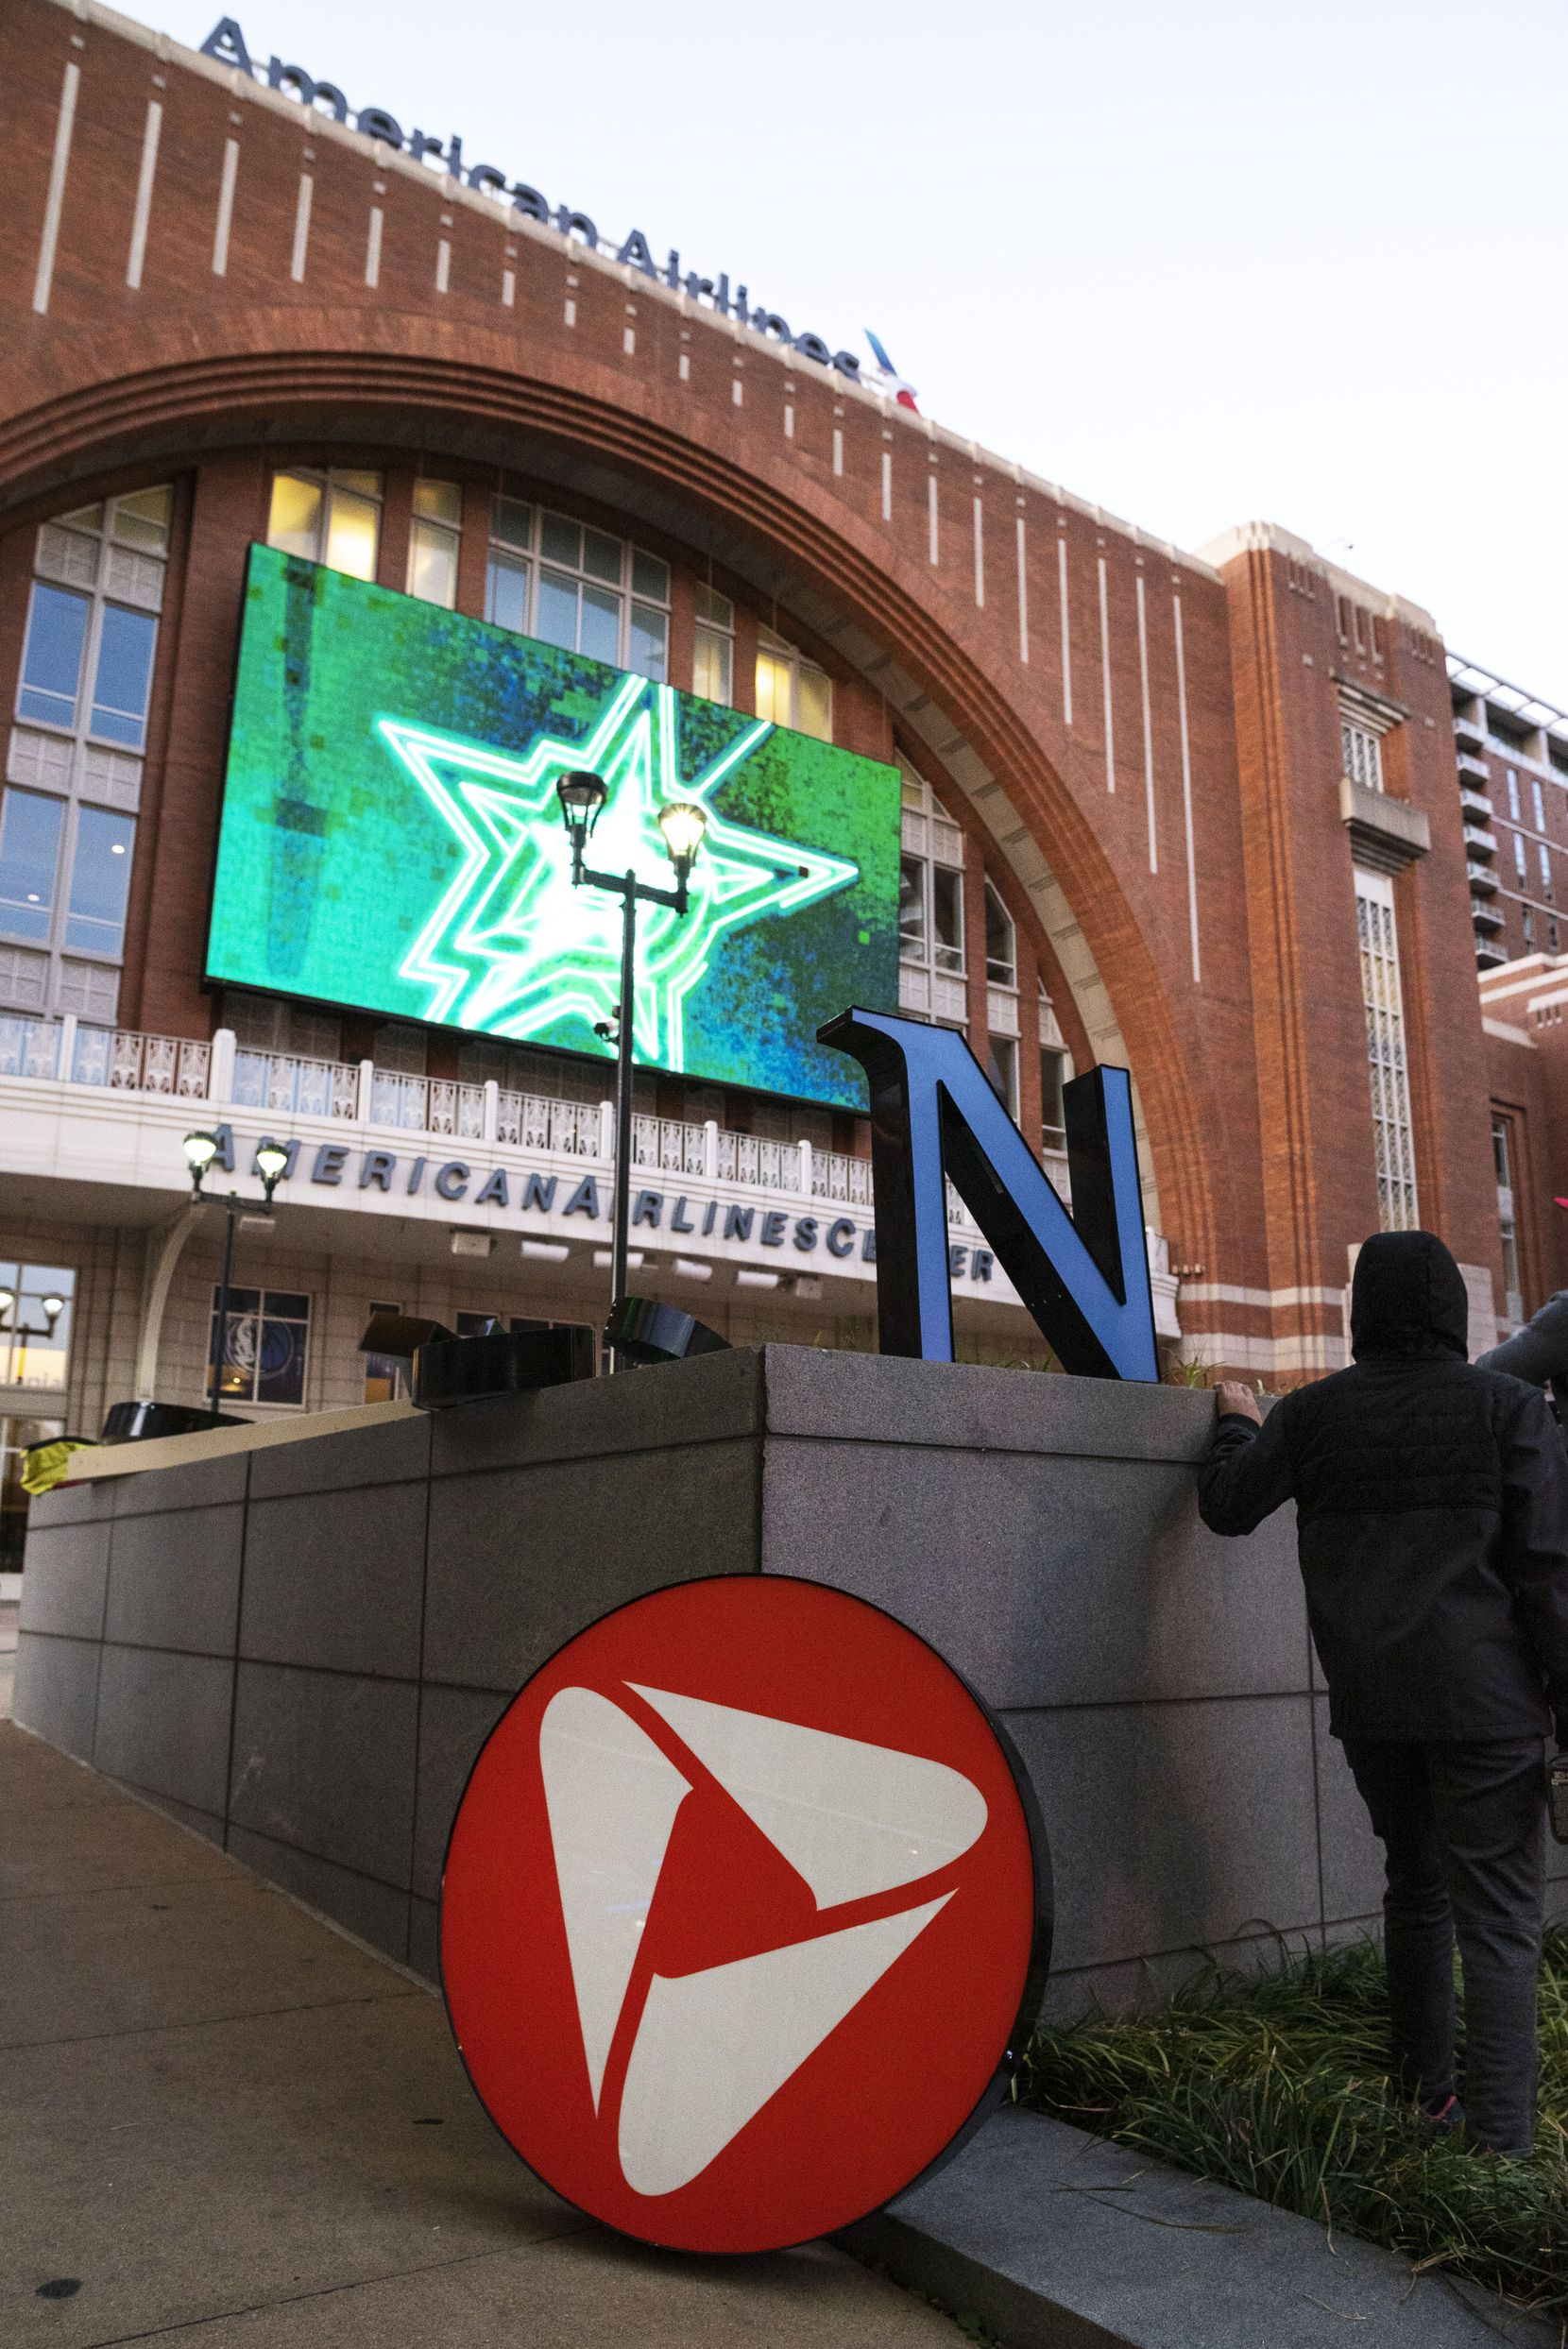 A crew spent Monday preparing to install the PNC Bank logo at Victory Plaza outside the American Airlines Center in Dallas.